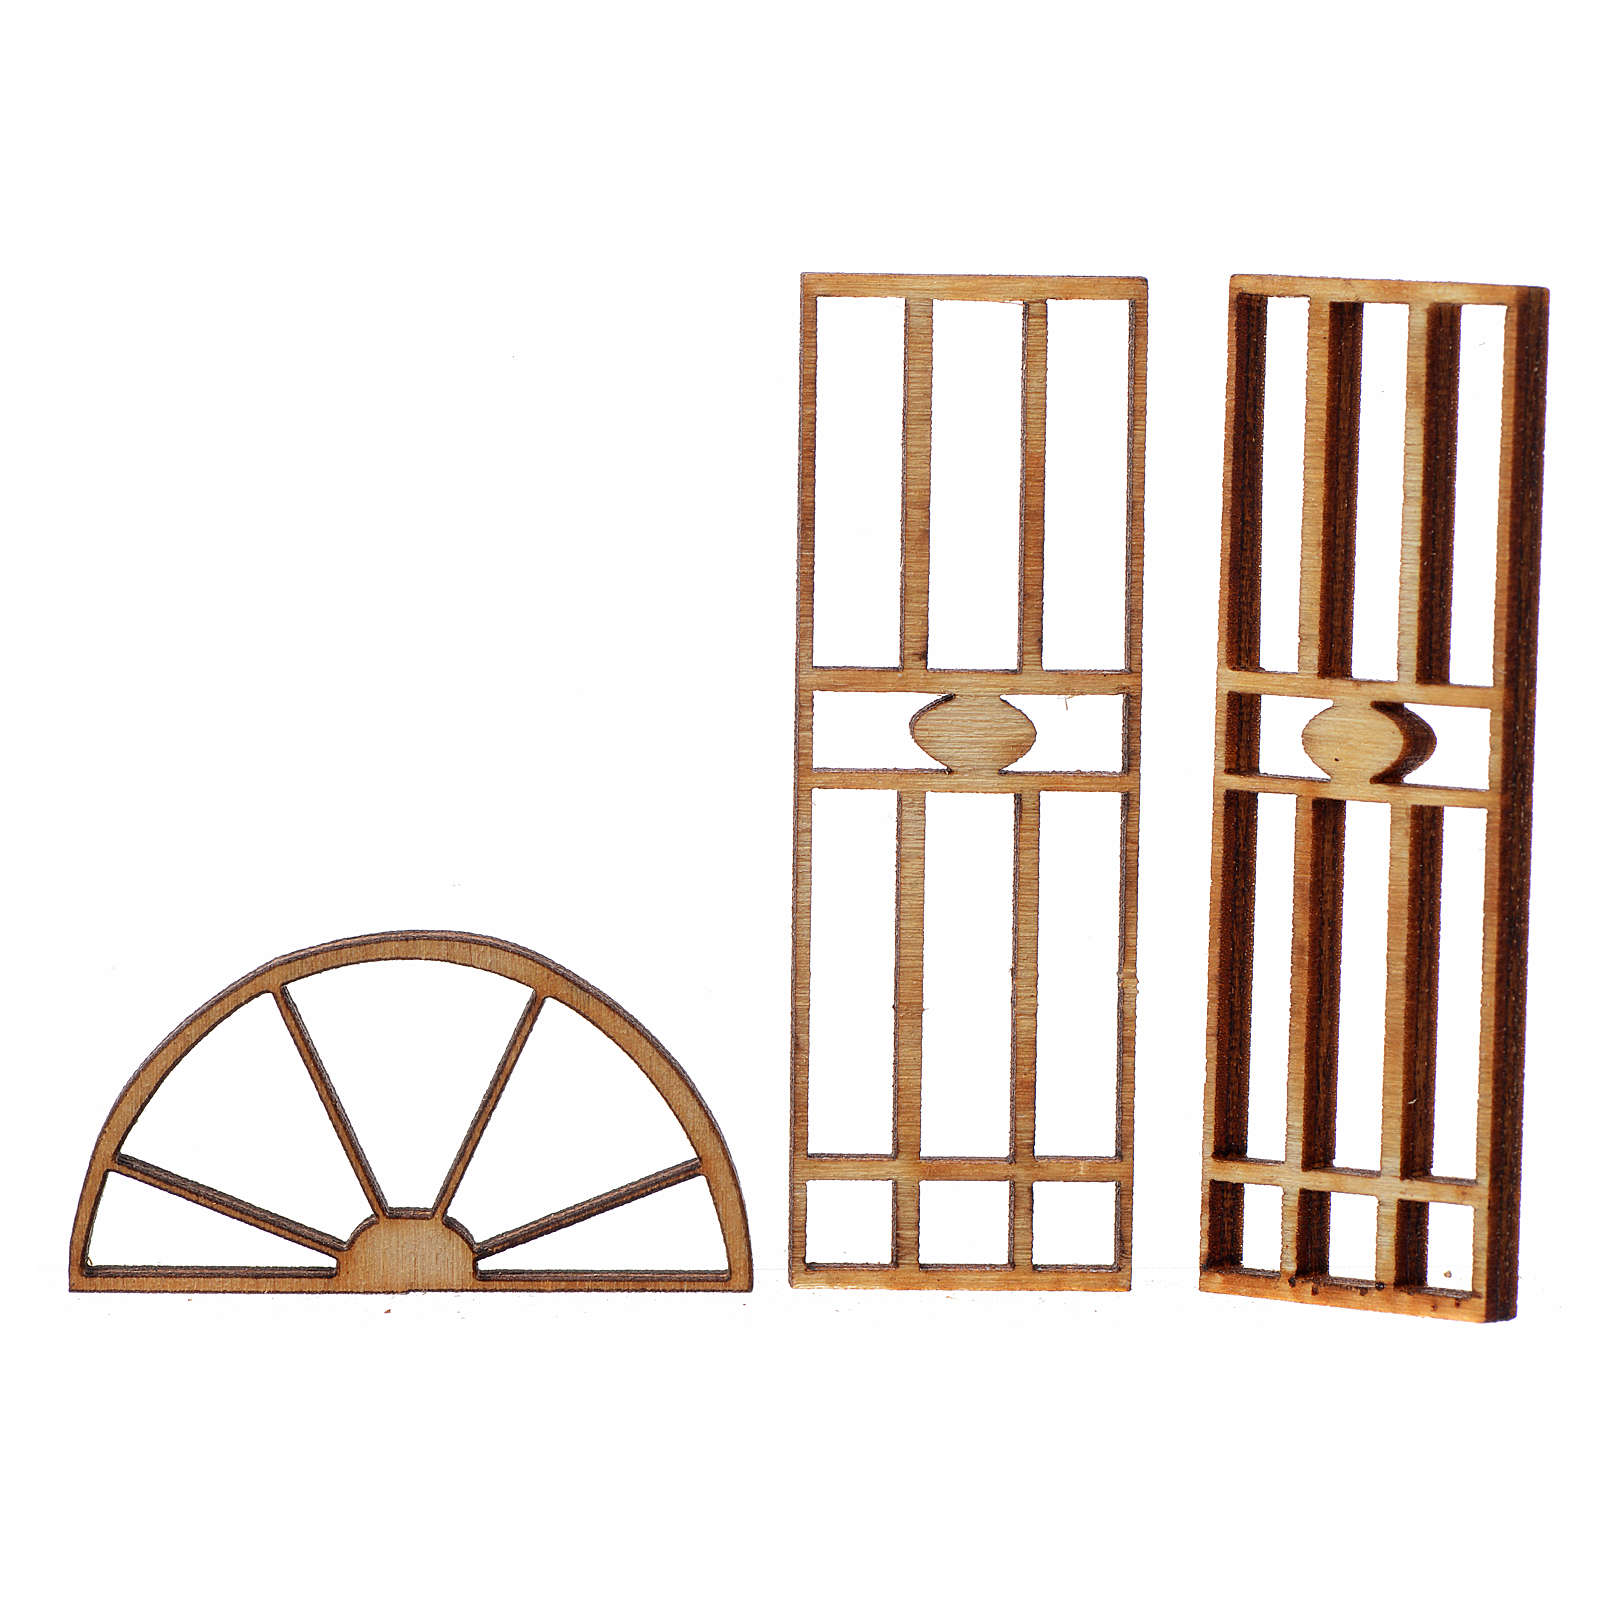 Nativity accessory, wooden gate, 3 pieces, 7x3.5cm 4